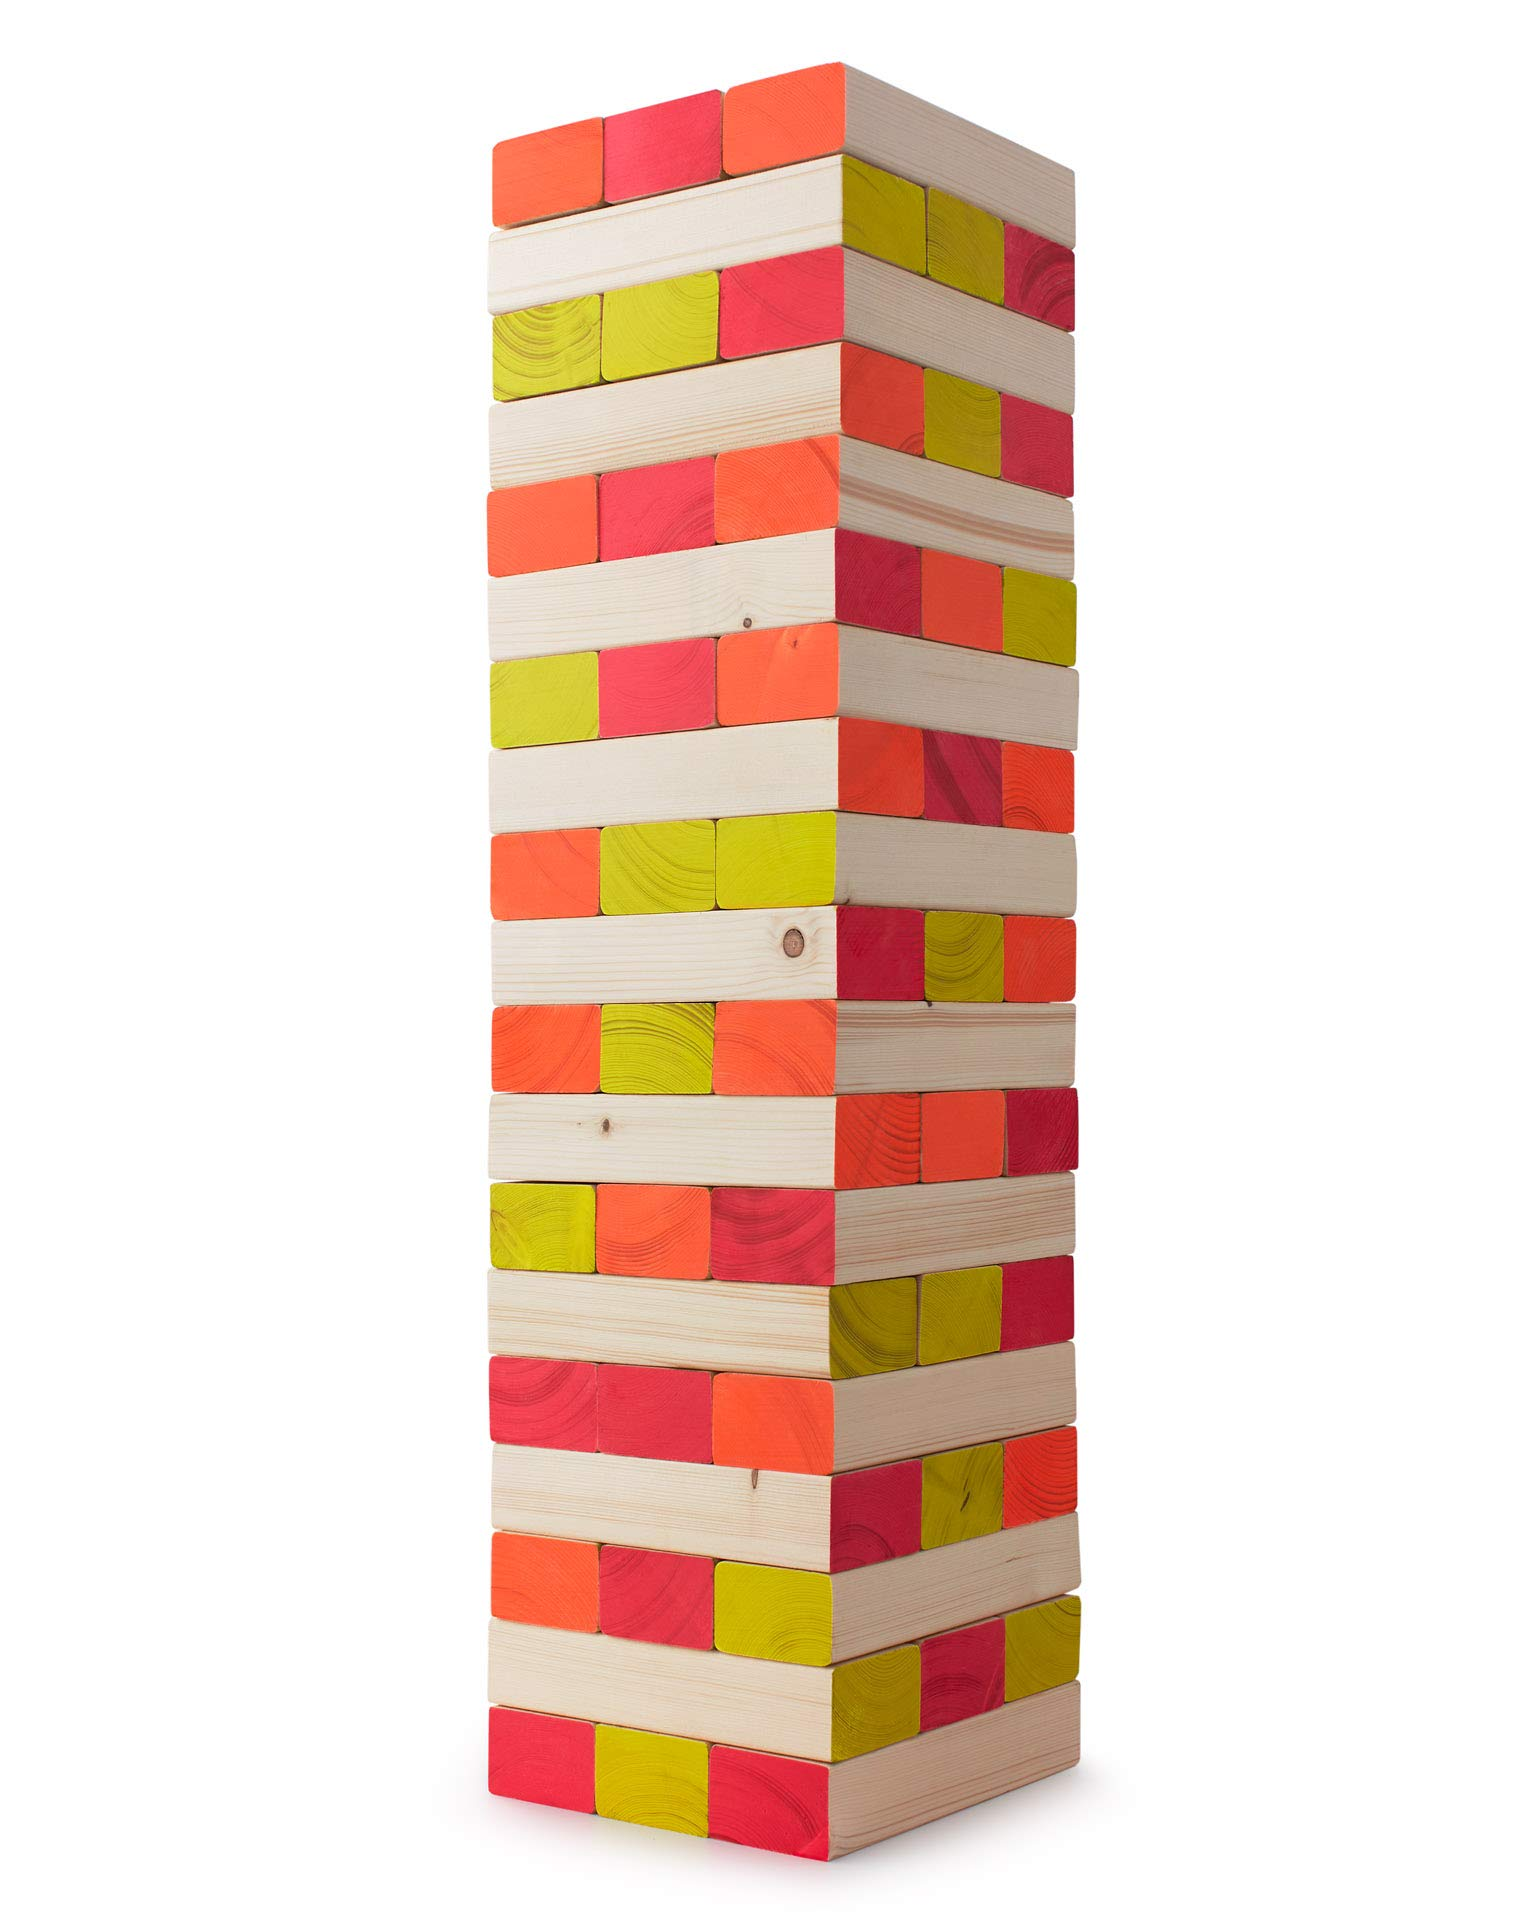 Limelight Games Ultimate Black Light Giant Tumbling Tower - Entertain Your Large Group Day Or Night - Glowing Blocks - Premium Carrying Case - Precision Milled Wooden Stacking Block Set by Limelite Games (Image #3)